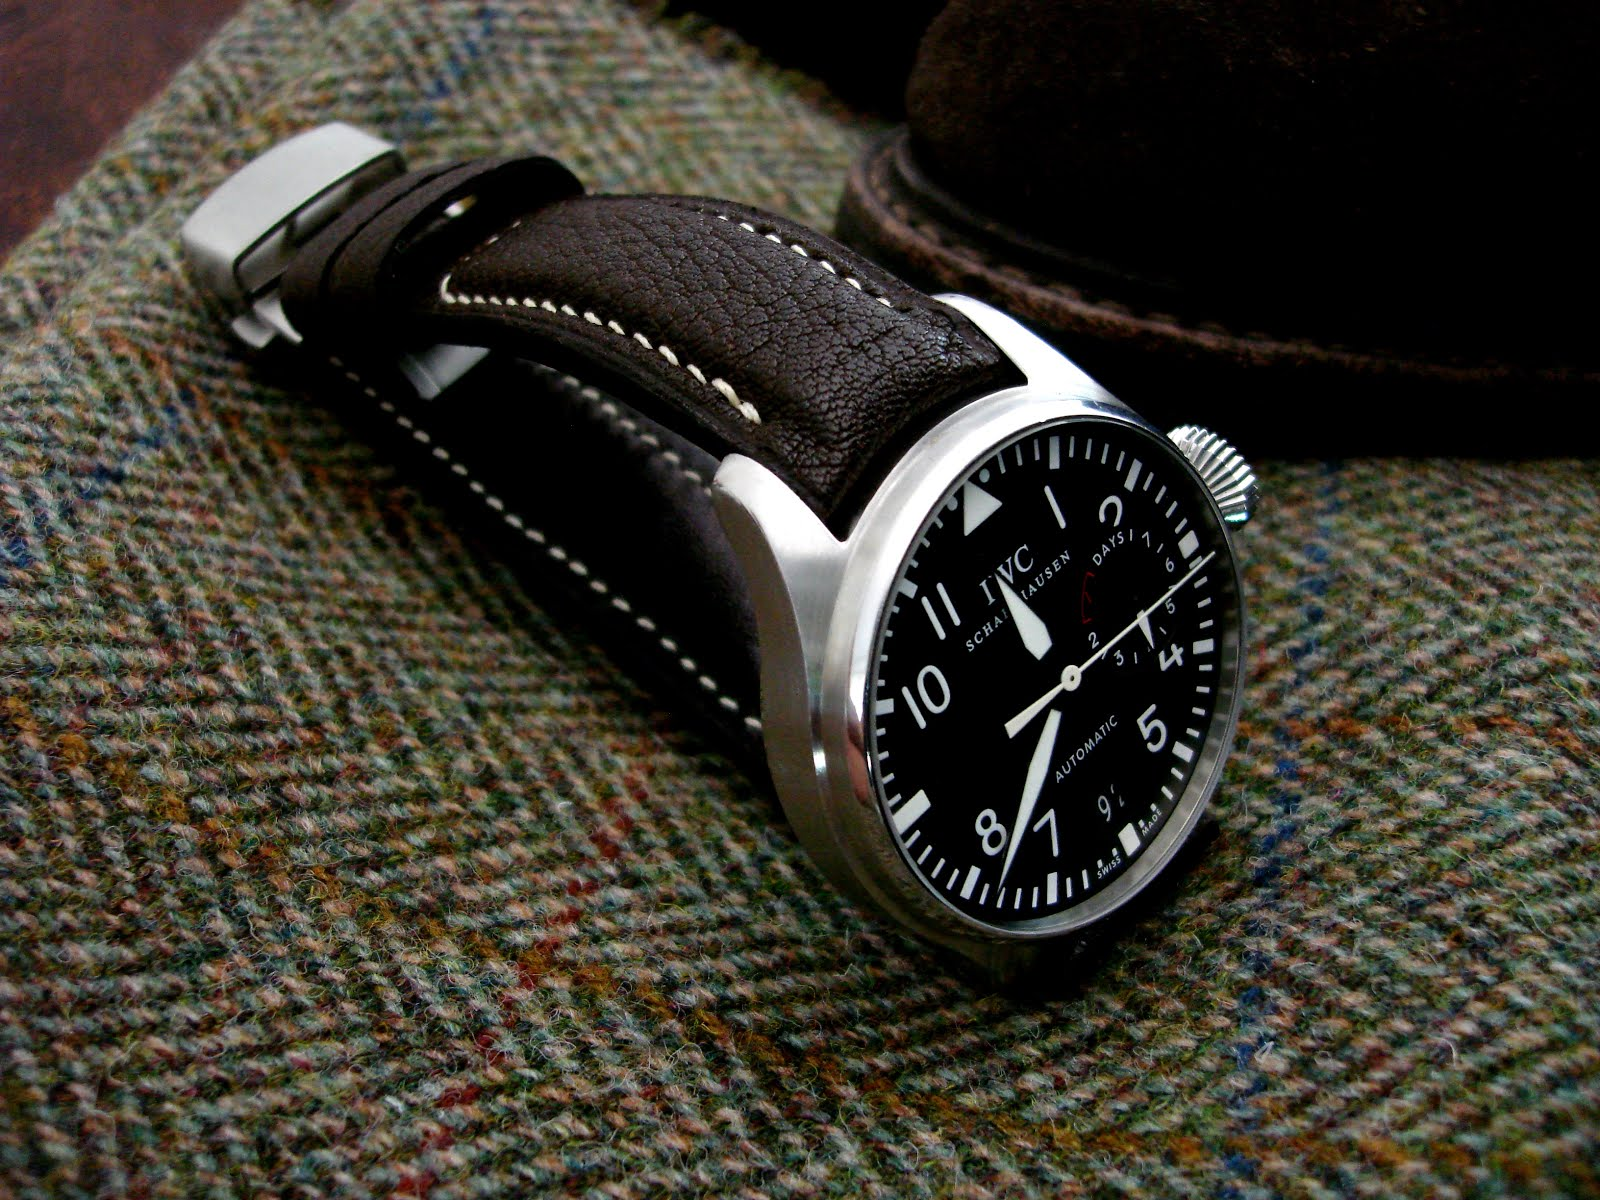 Ingo's IWC Big Pilot on Jurassic Chocolate strap with TCLS